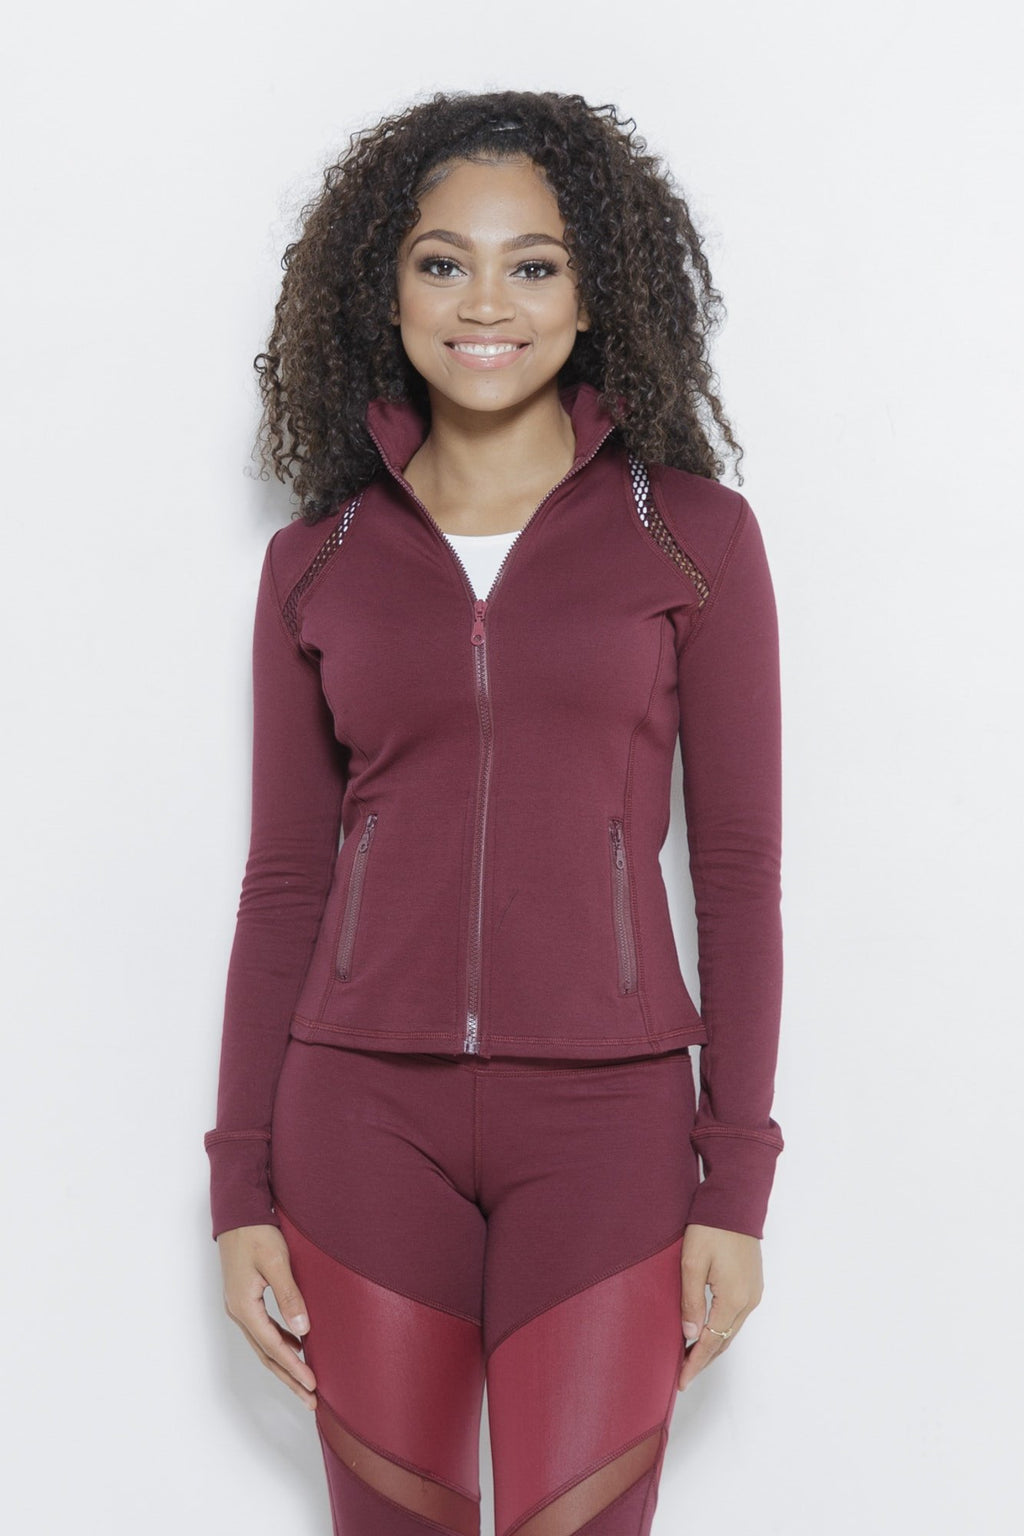 fair-shade - Netty for Sure Sports Jacket - Clothing